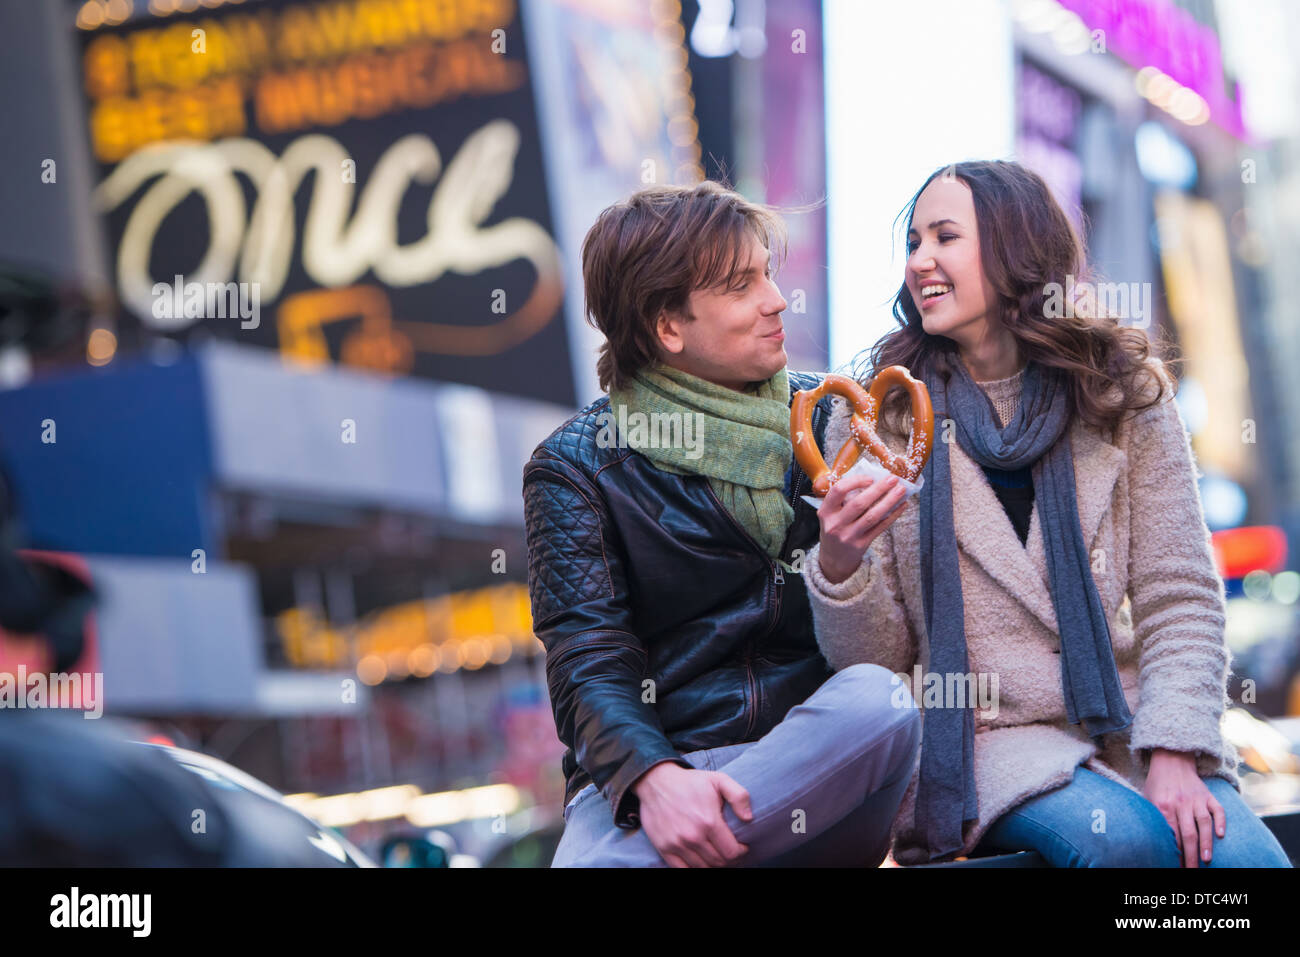 Young couple sharing pretzel, New York City, USA - Stock Image